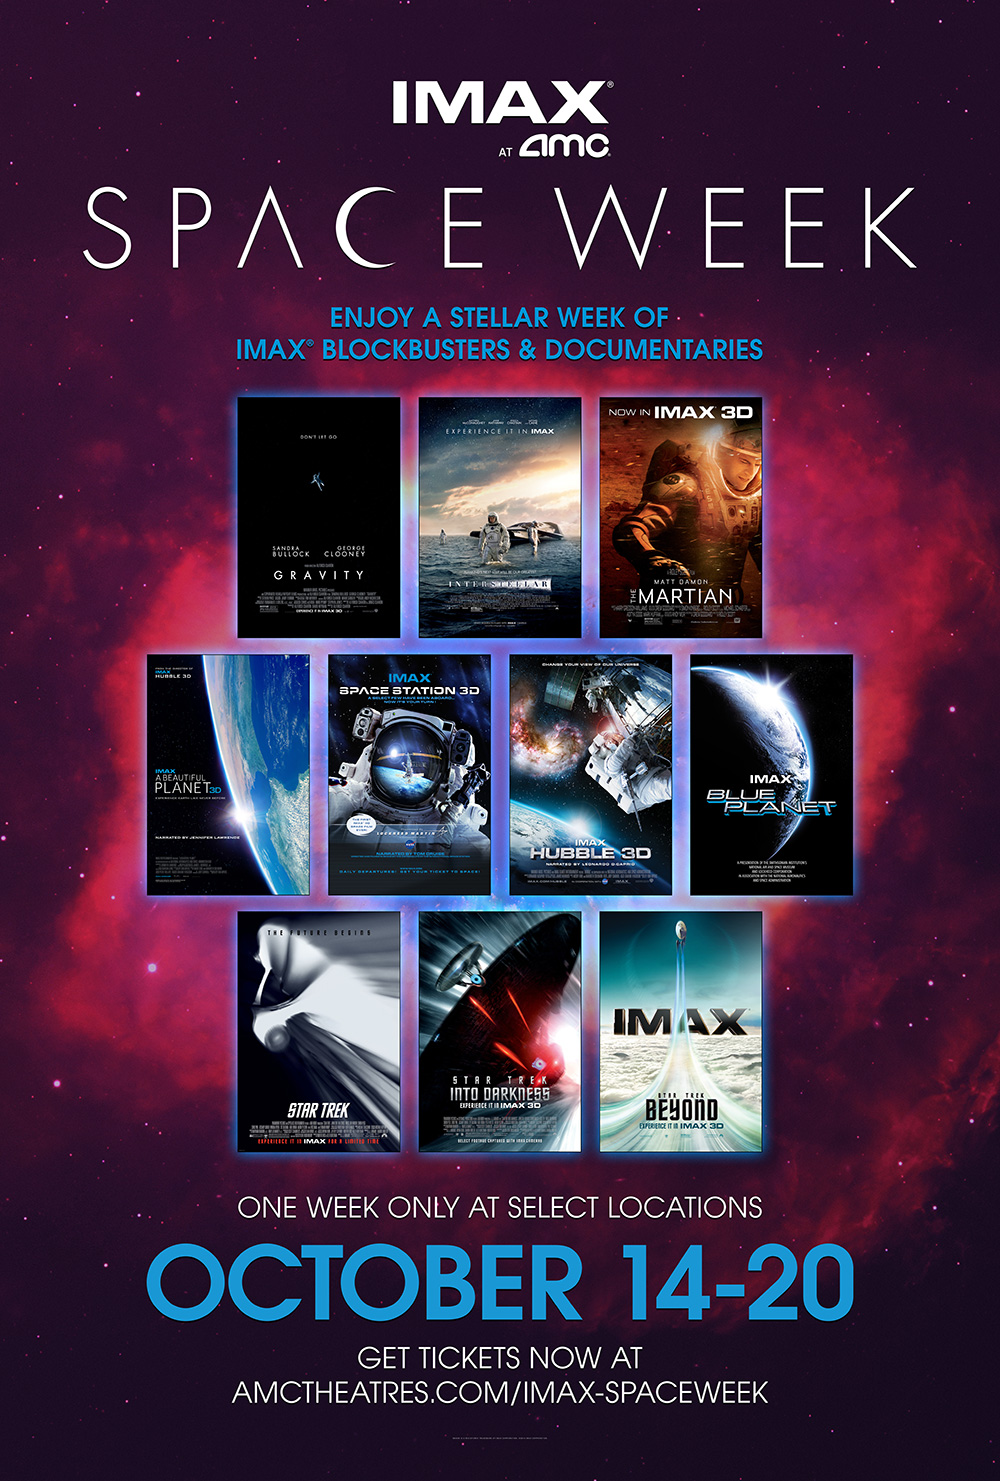 Imax Space Week Launches At Amc Theatres In October Imax